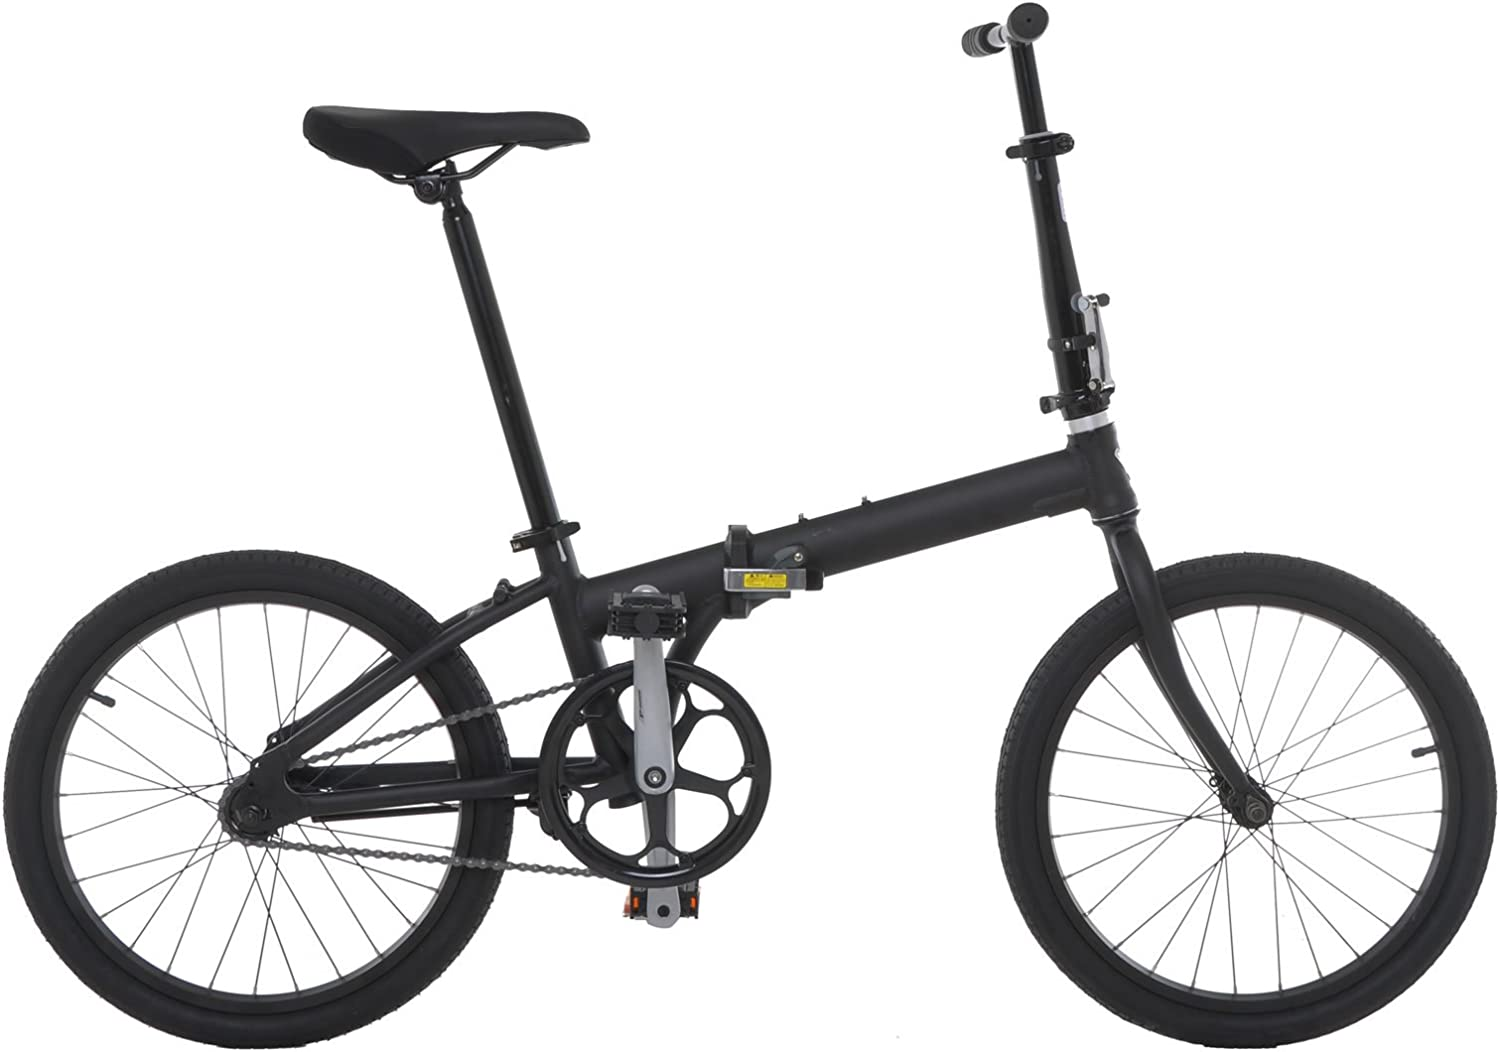 6 Best Budget Folding Bikes in 2021 Reviews